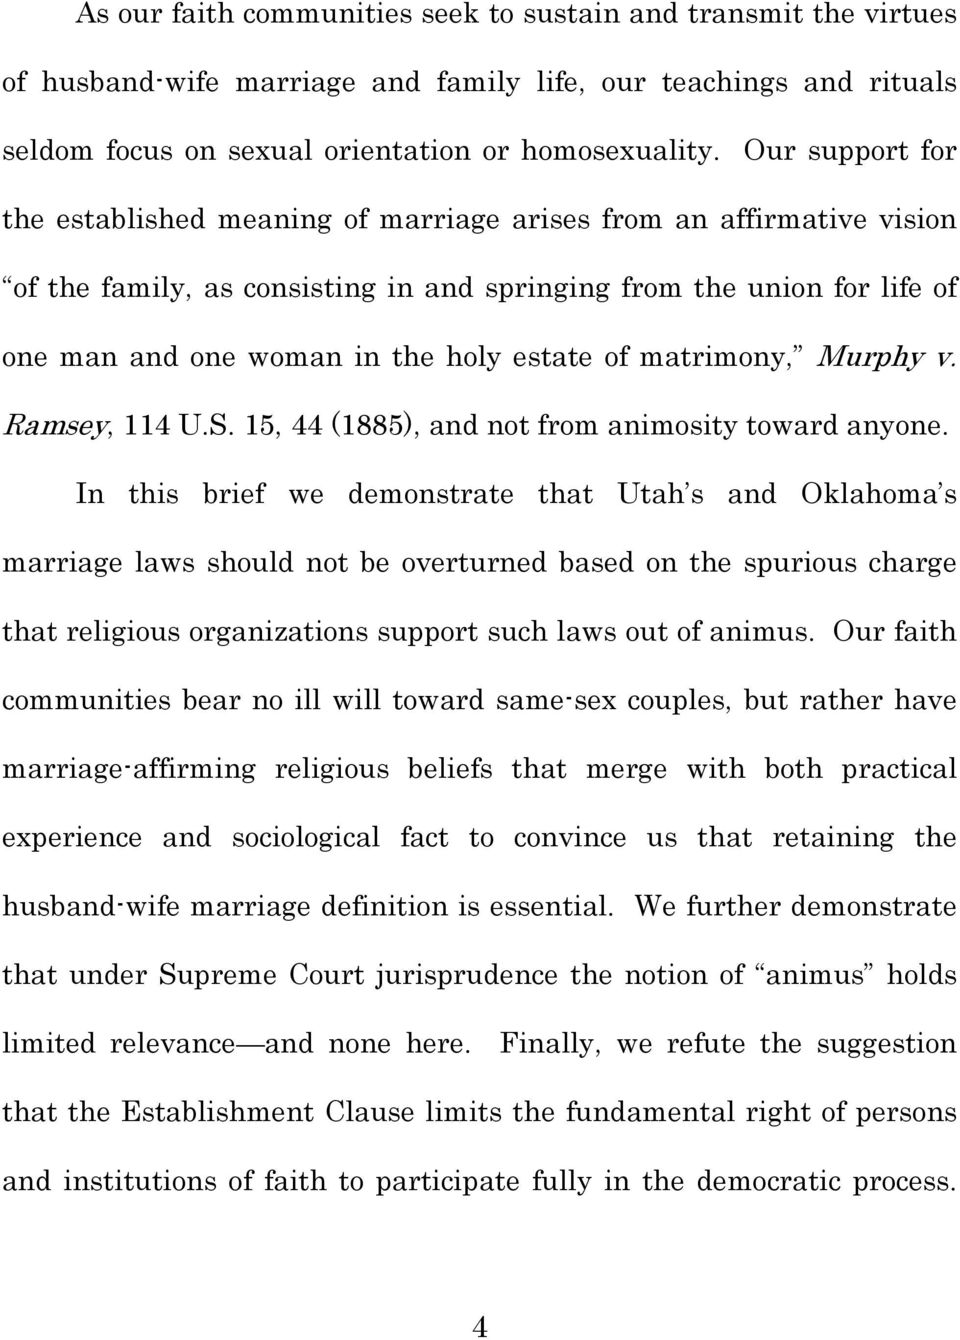 of matrimony, Murphy v. Ramsey, 114 U.S. 15, 44 (1885), and not from animosity toward anyone.